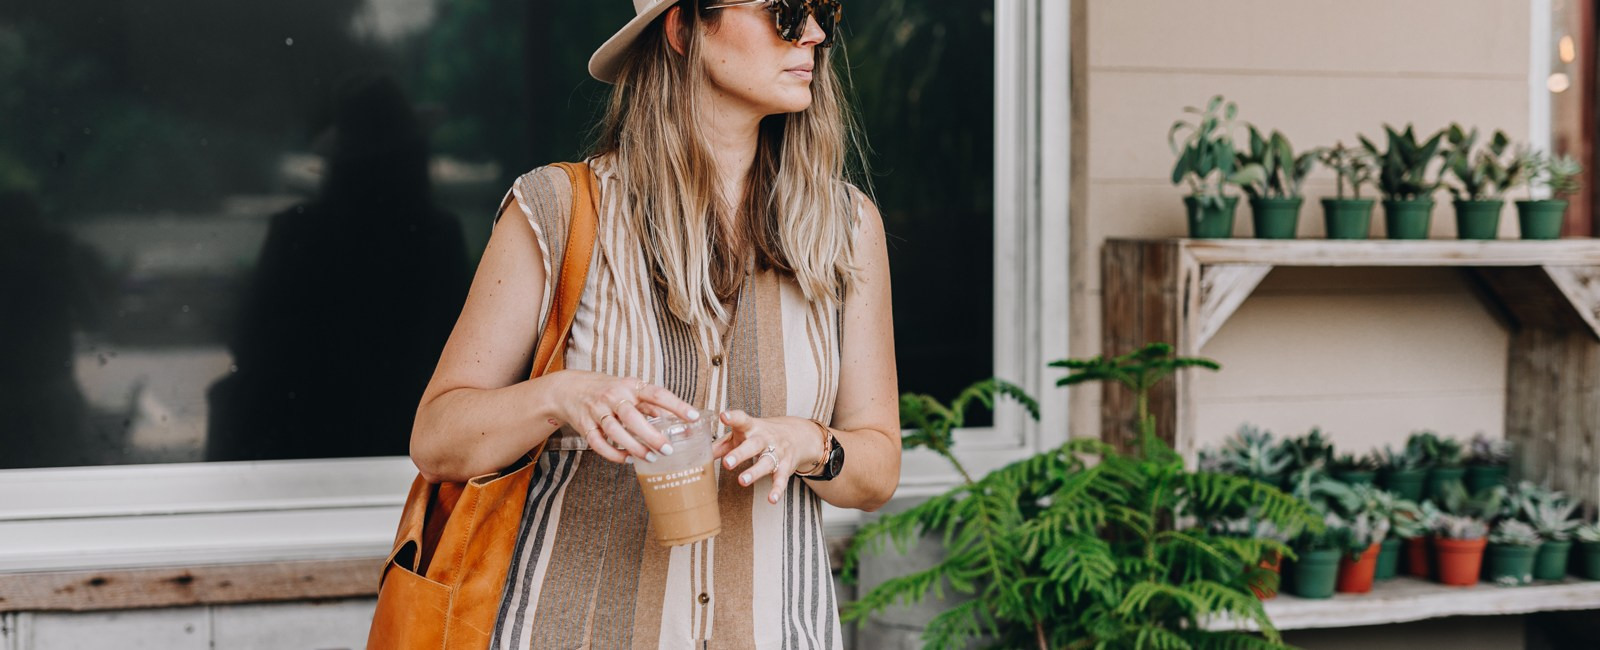 Dressing for Fall While it's Still Summer with The Odell's Shop